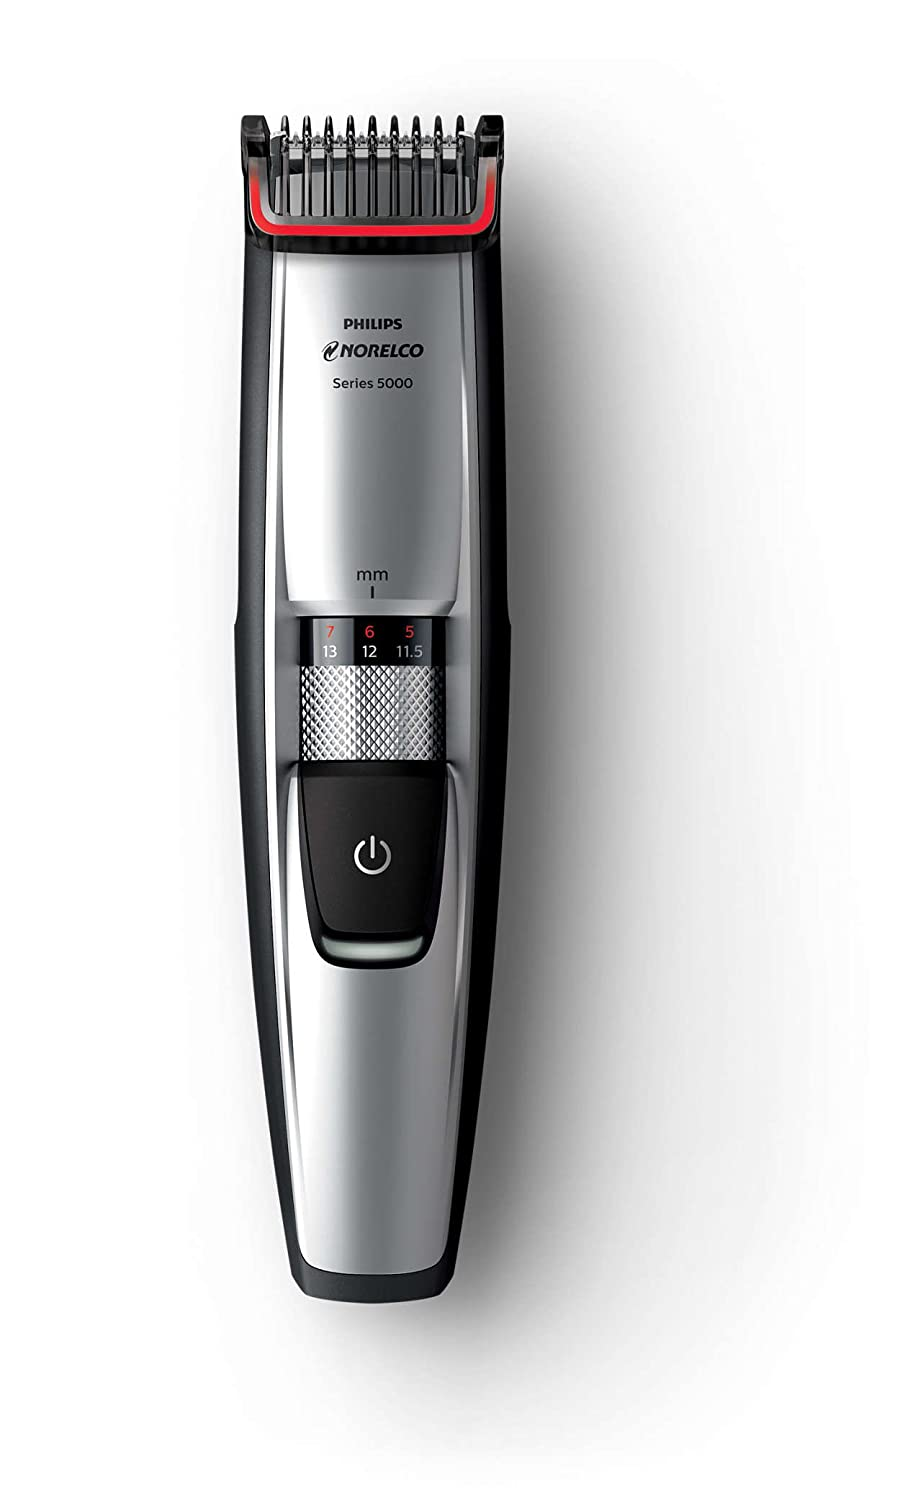 Philips Norelco All-in-One Cordless Wet/Dry Multigroom Turbo-Powered Beard Mustache & Head Trimmer Grooming Kit